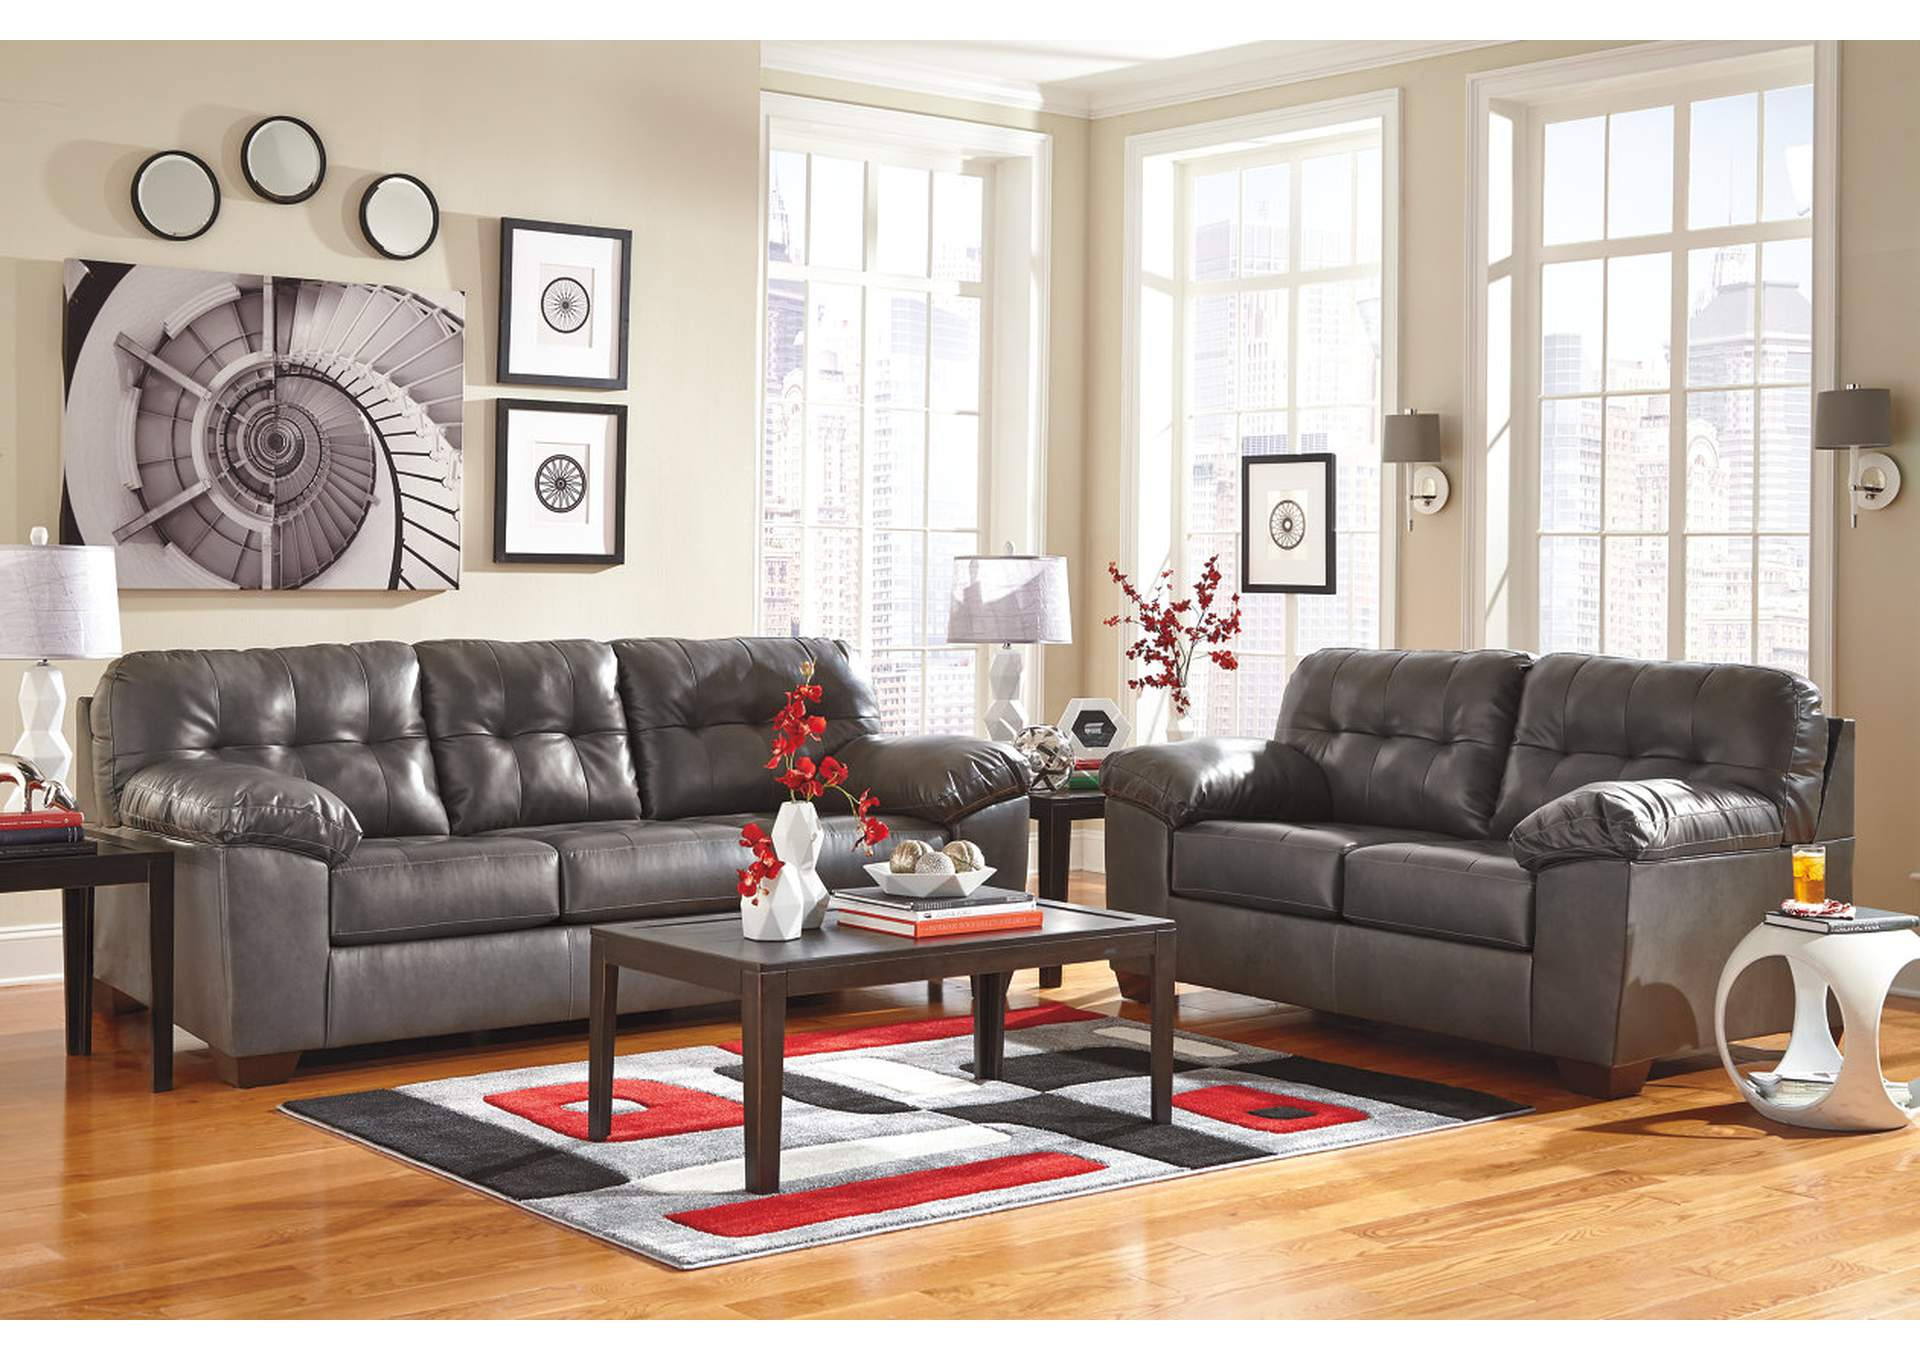 Alliston DuraBlend Gray Sofa,Signature Design By Ashley